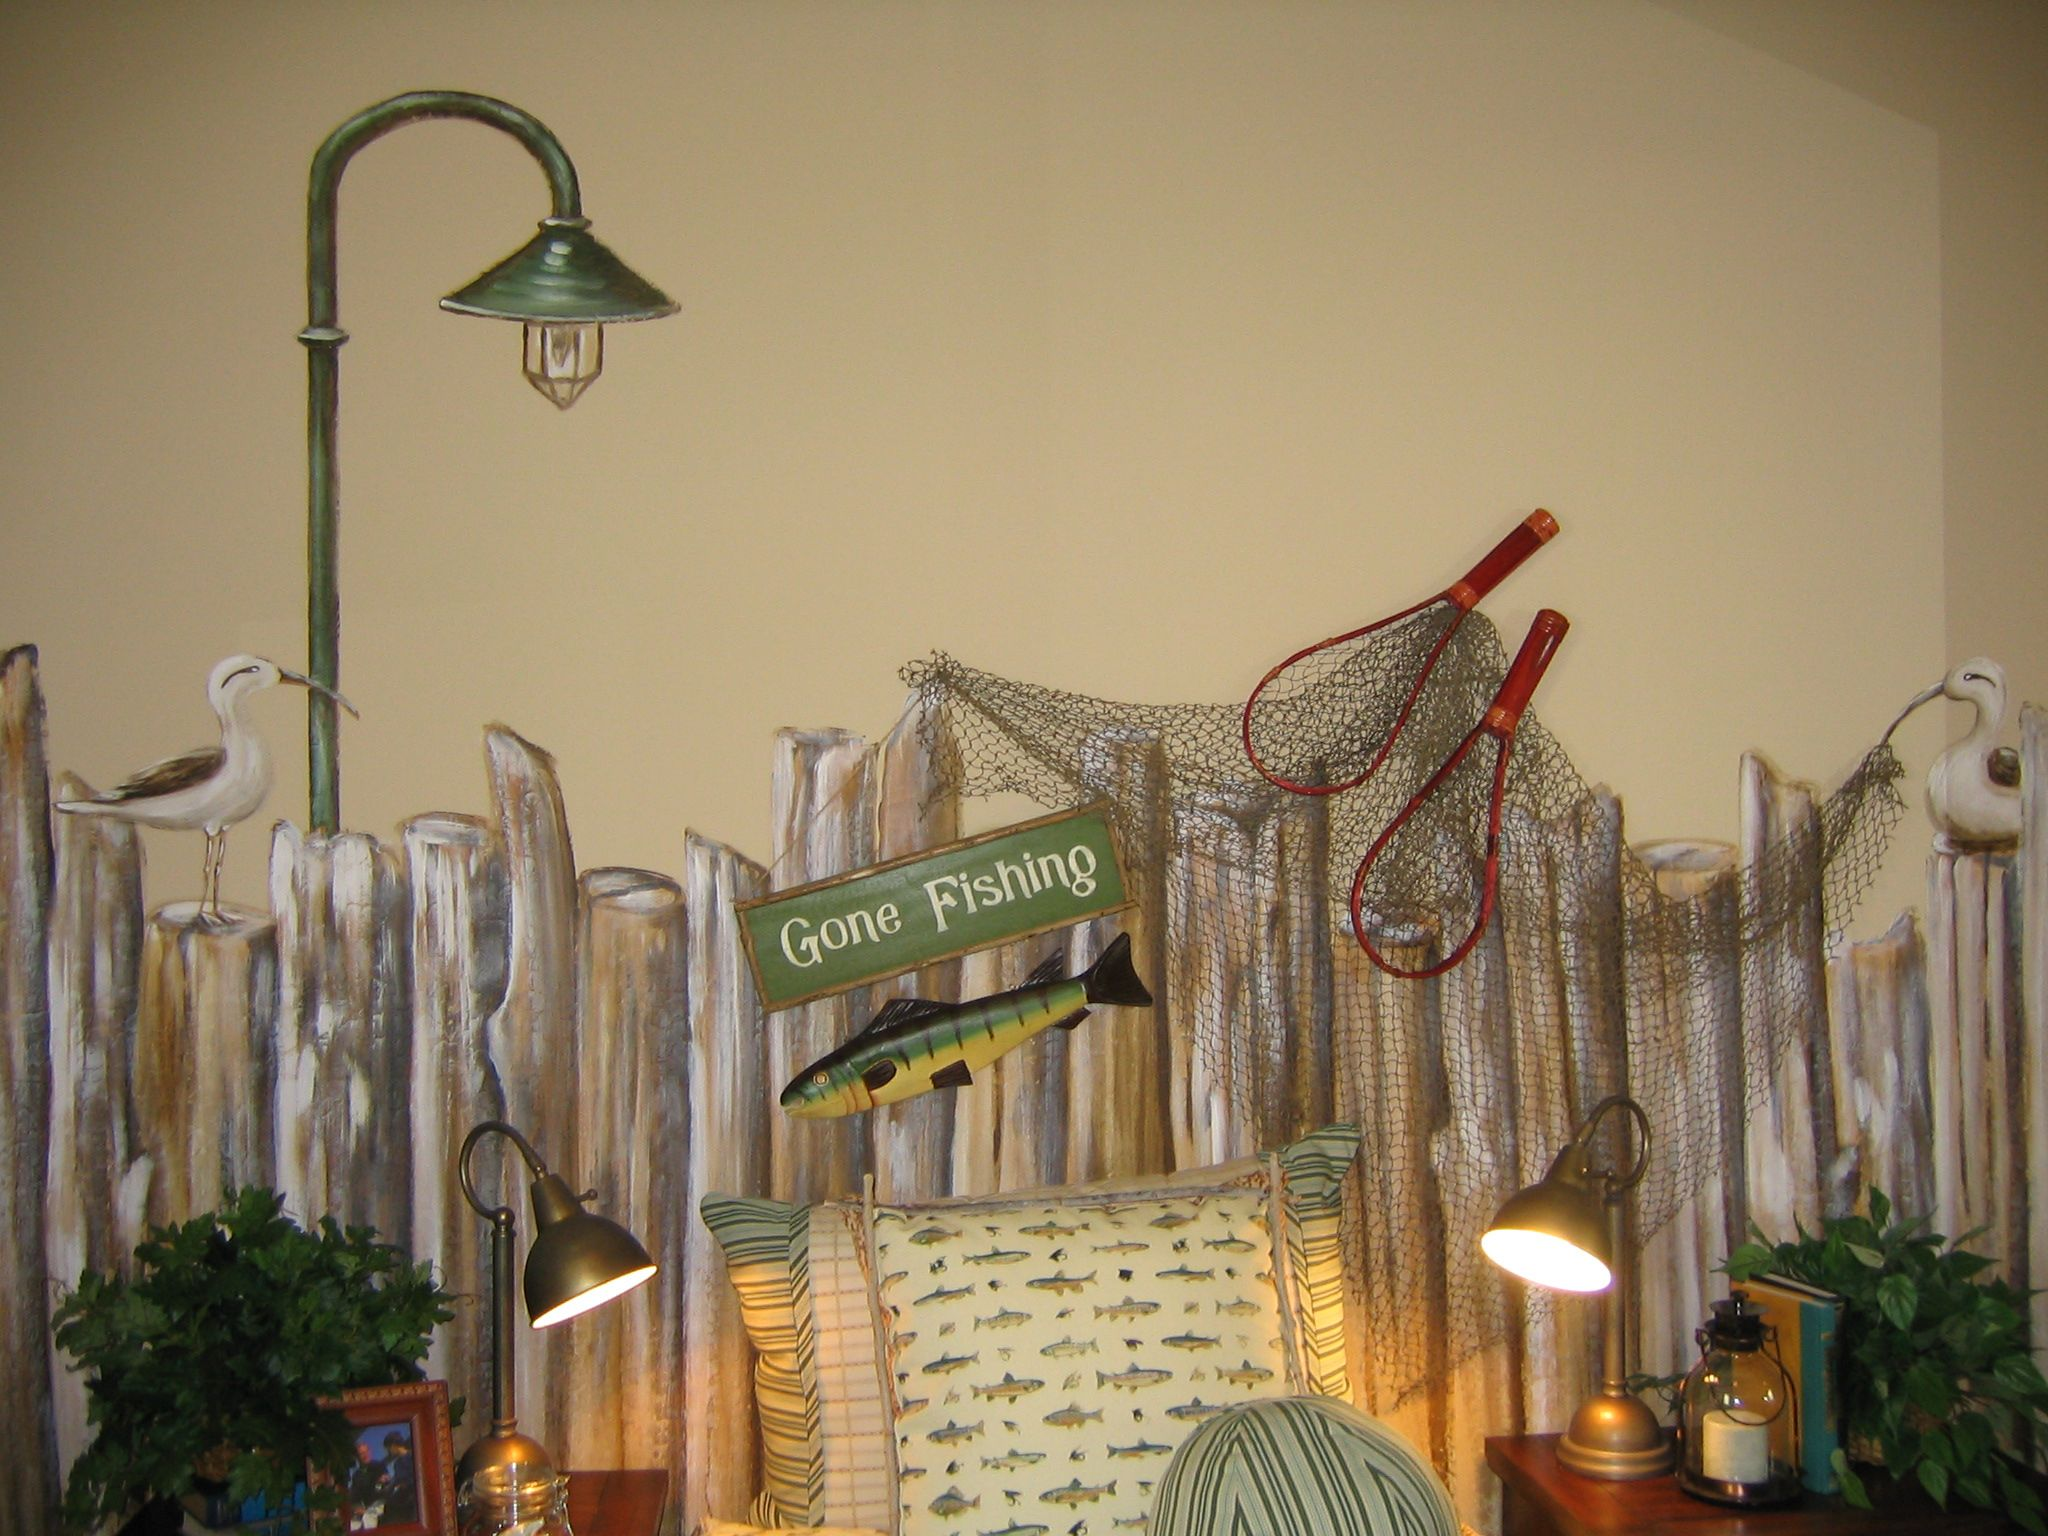 fishing themed room copyright 2011 art couture all rights reserved